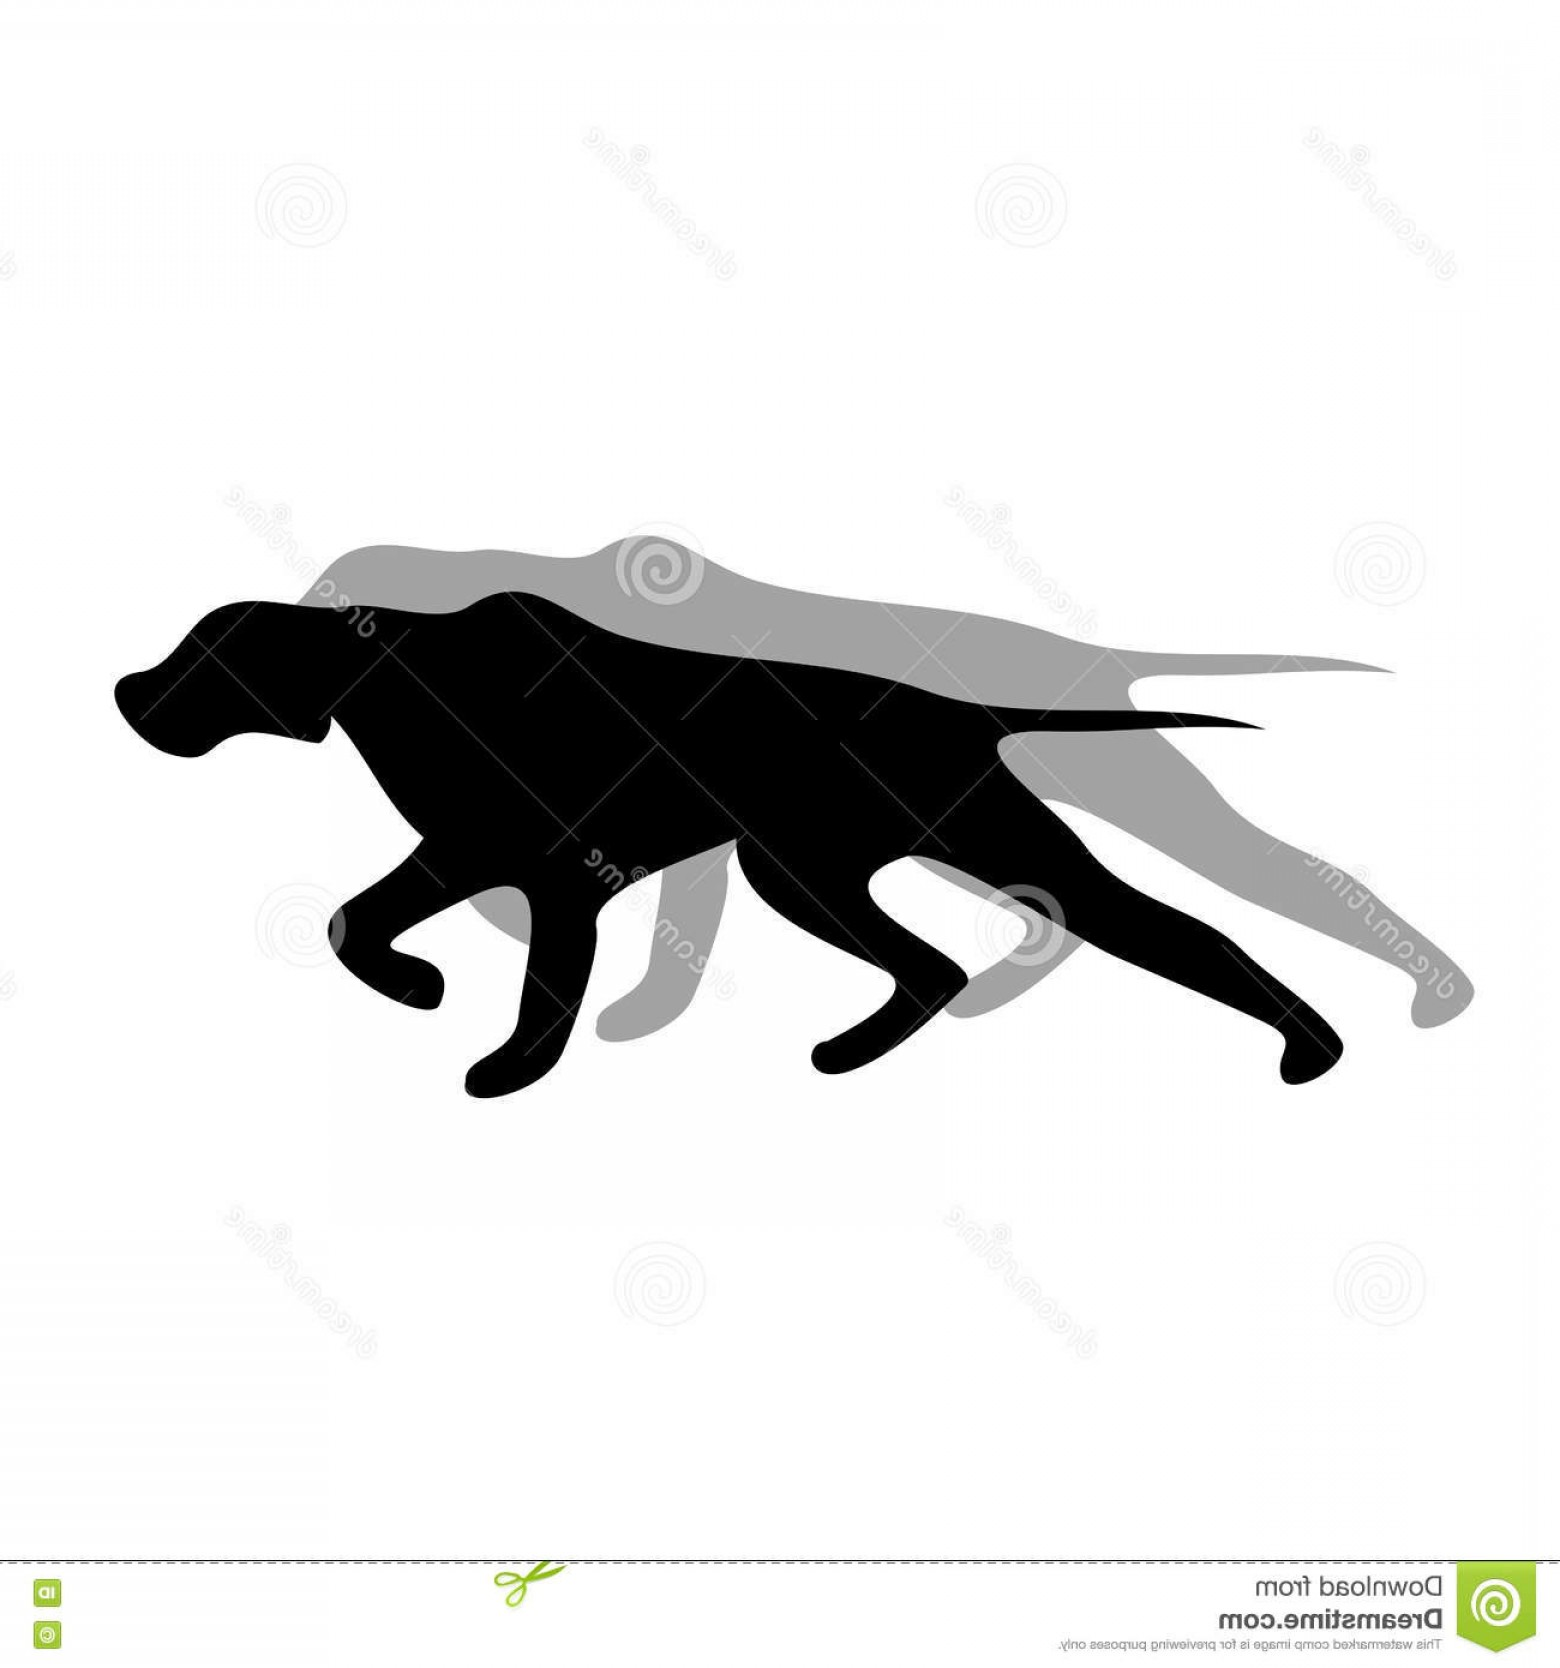 Pointer Dog Vector: Stock Illustration English Pointer Dog Black Silhouette Vector Illustration Image